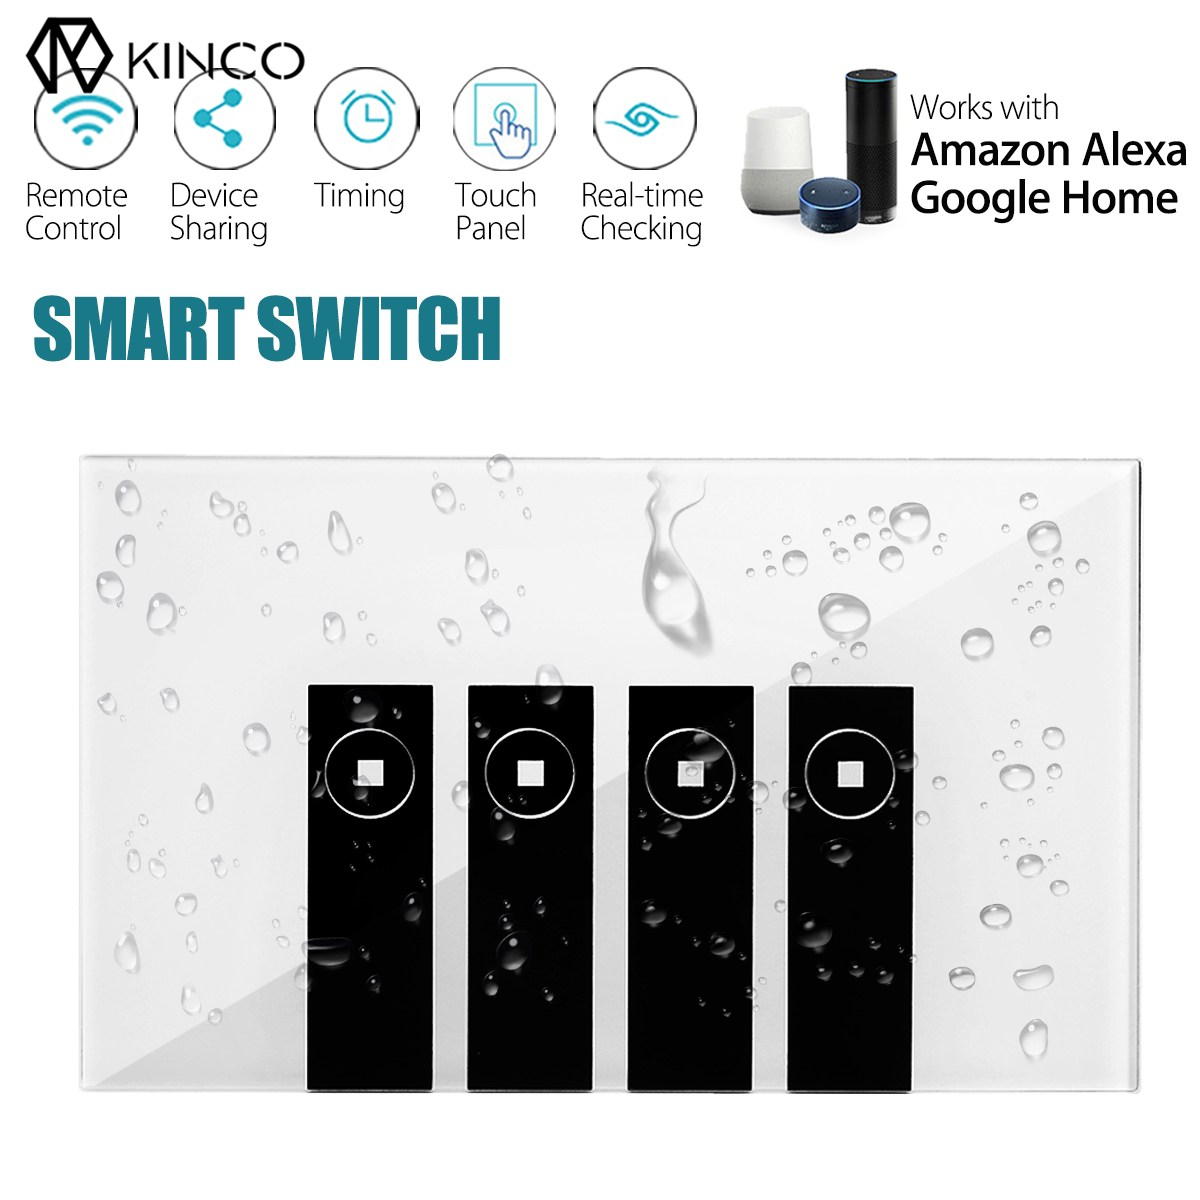 Kinco 120mm WIFI Smart Wall Switch Touch Panel APP Timing RC